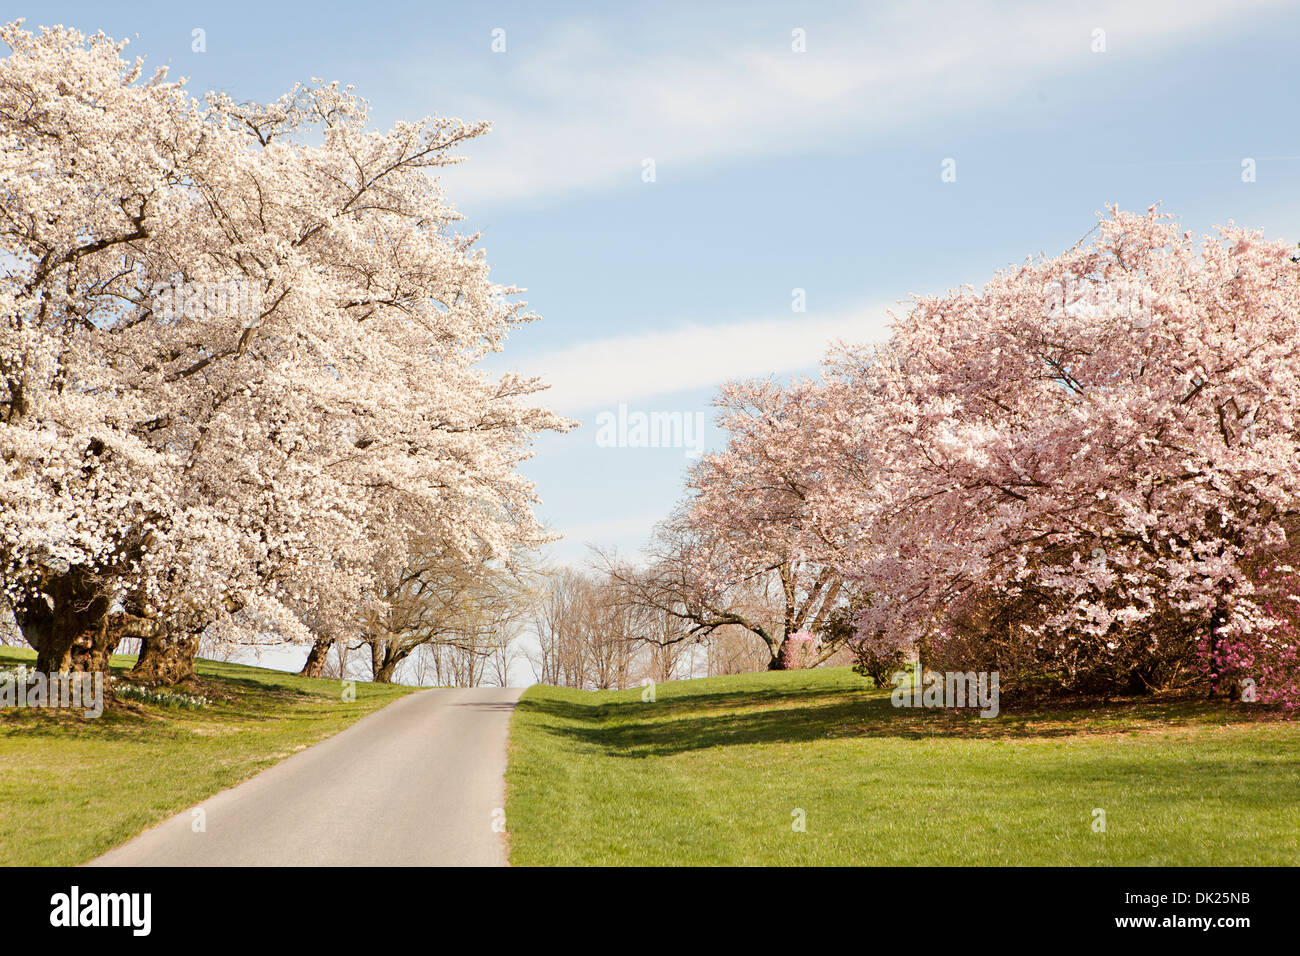 Pink and white blossoms on spring trees along path - Stock Image